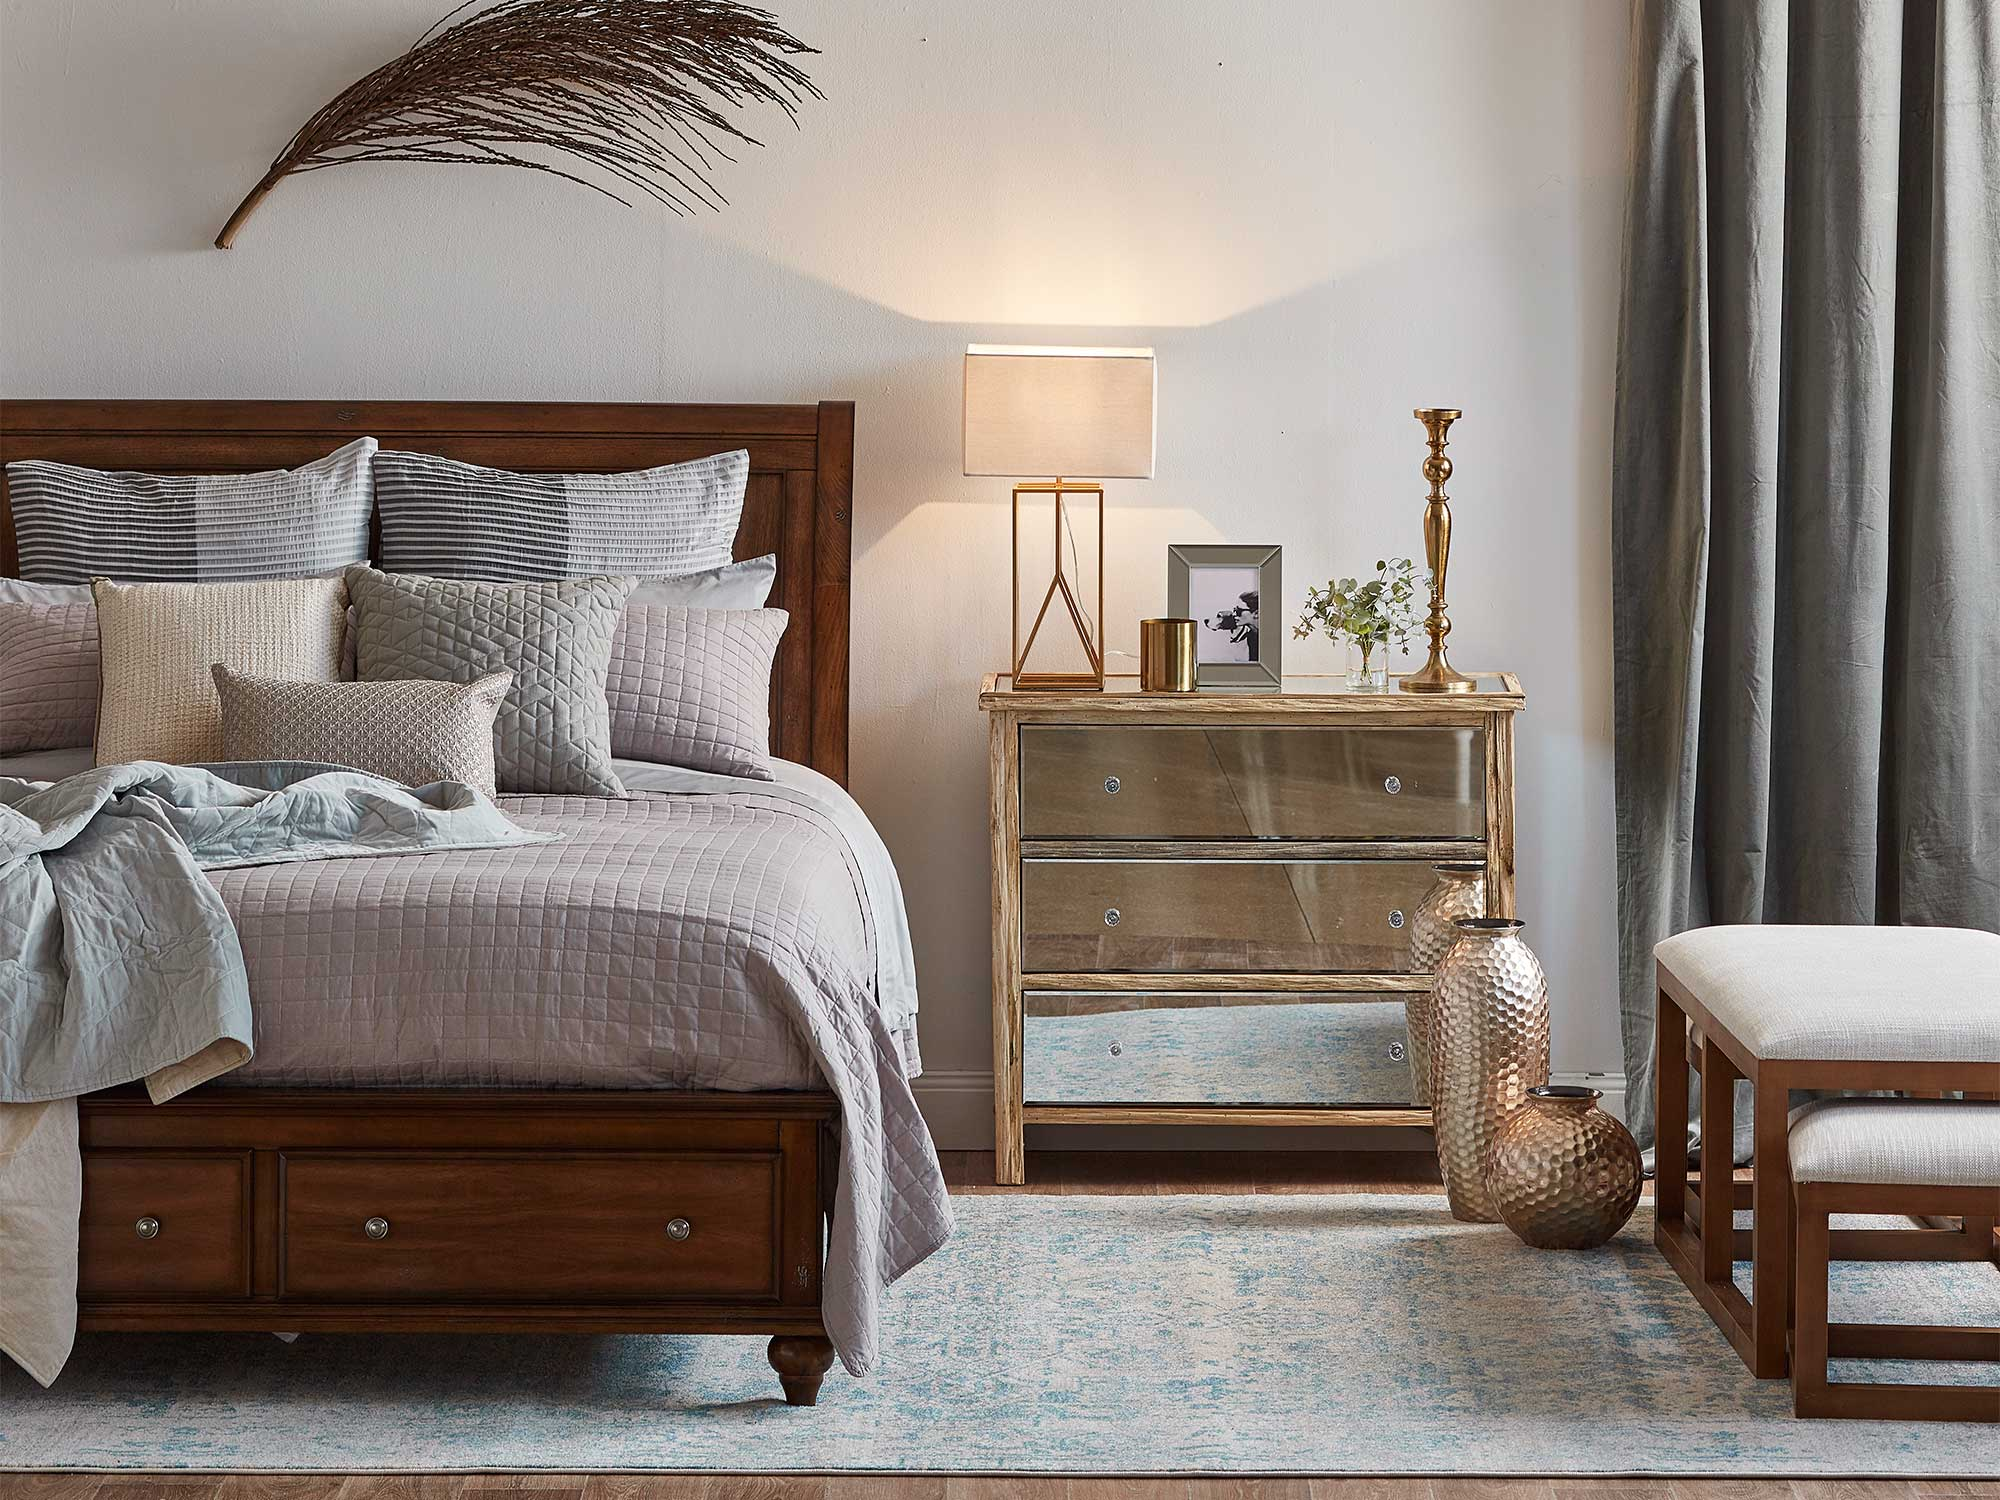 Bedroom Ideas with Curtains and Drapes - realestate.com.au on Bedroom Curtain Ideas  id=12560